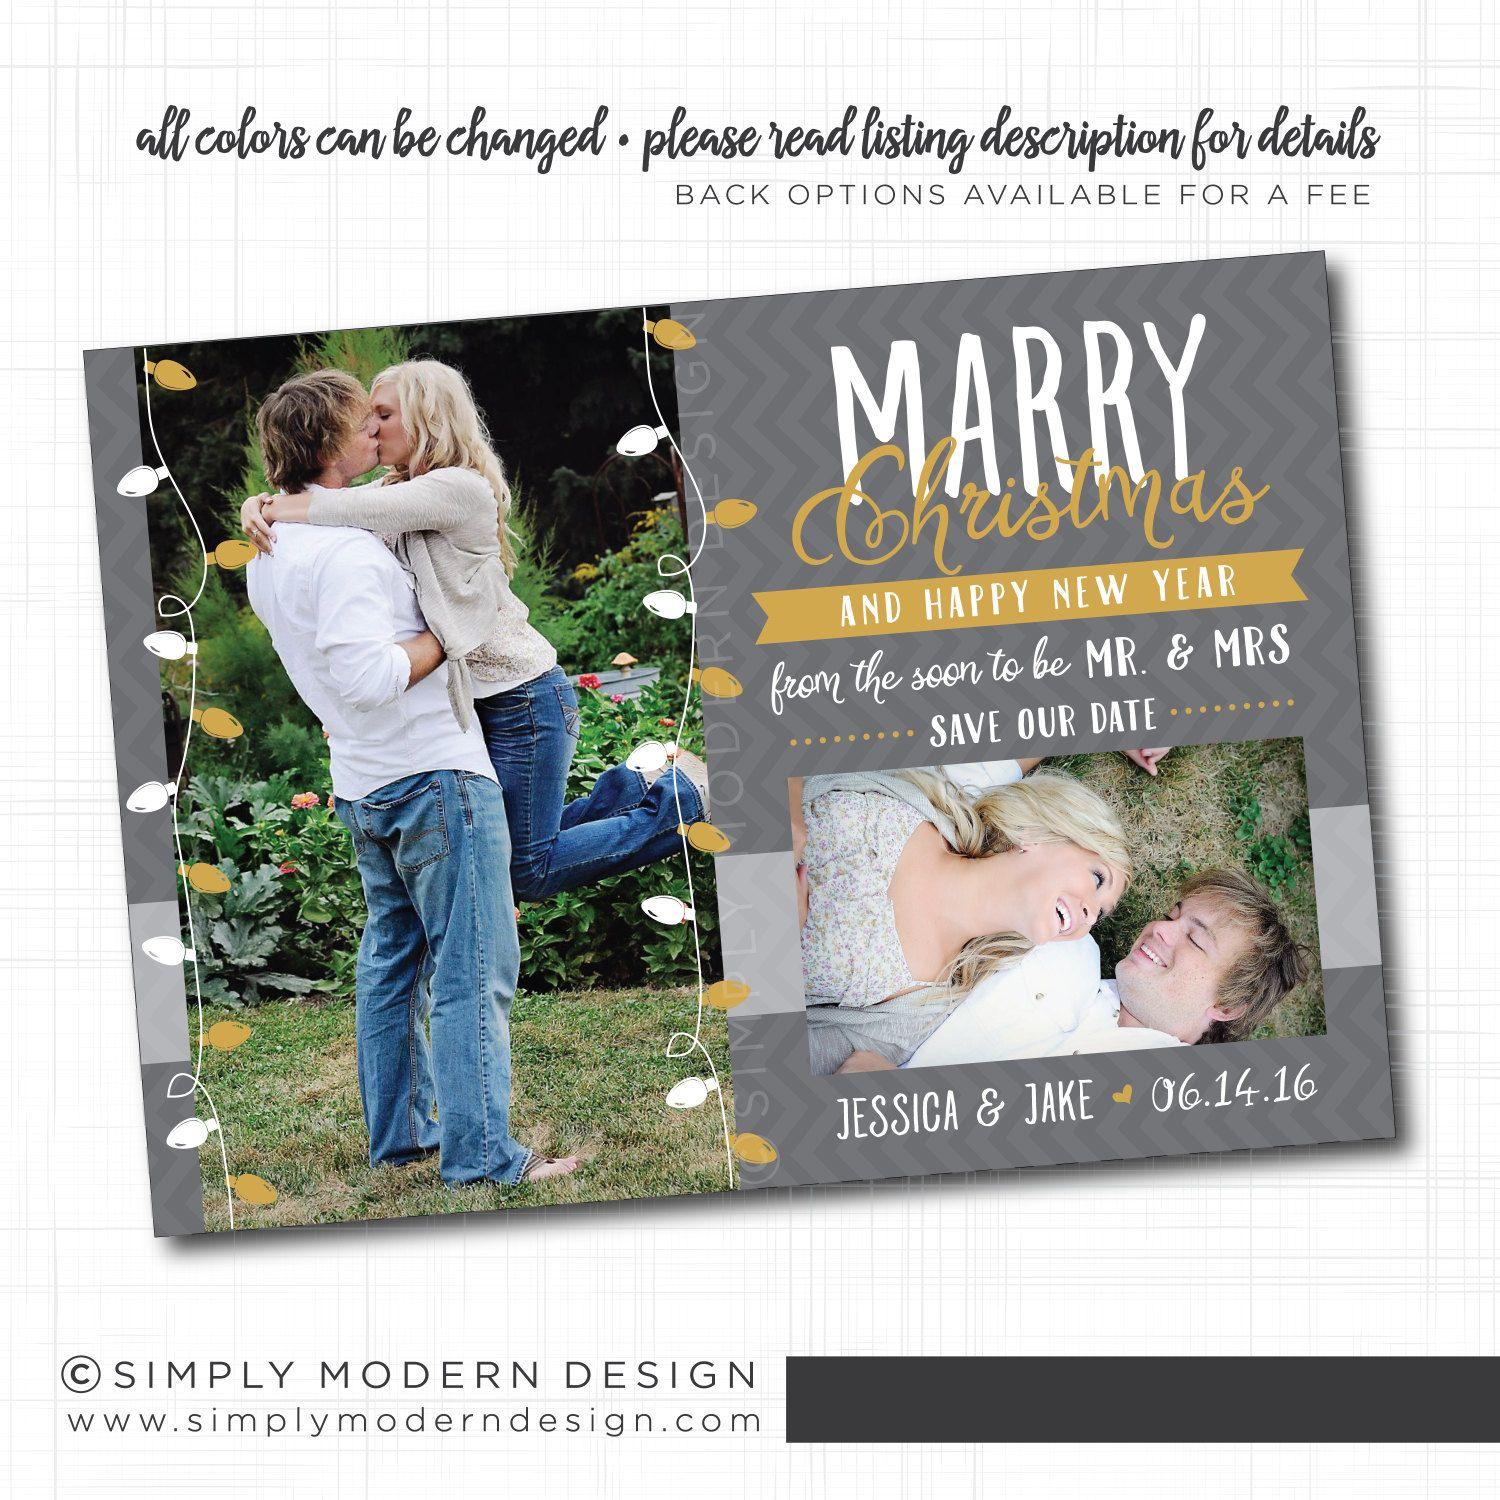 marry little christmas save the date card, invitation, wedding, save ...